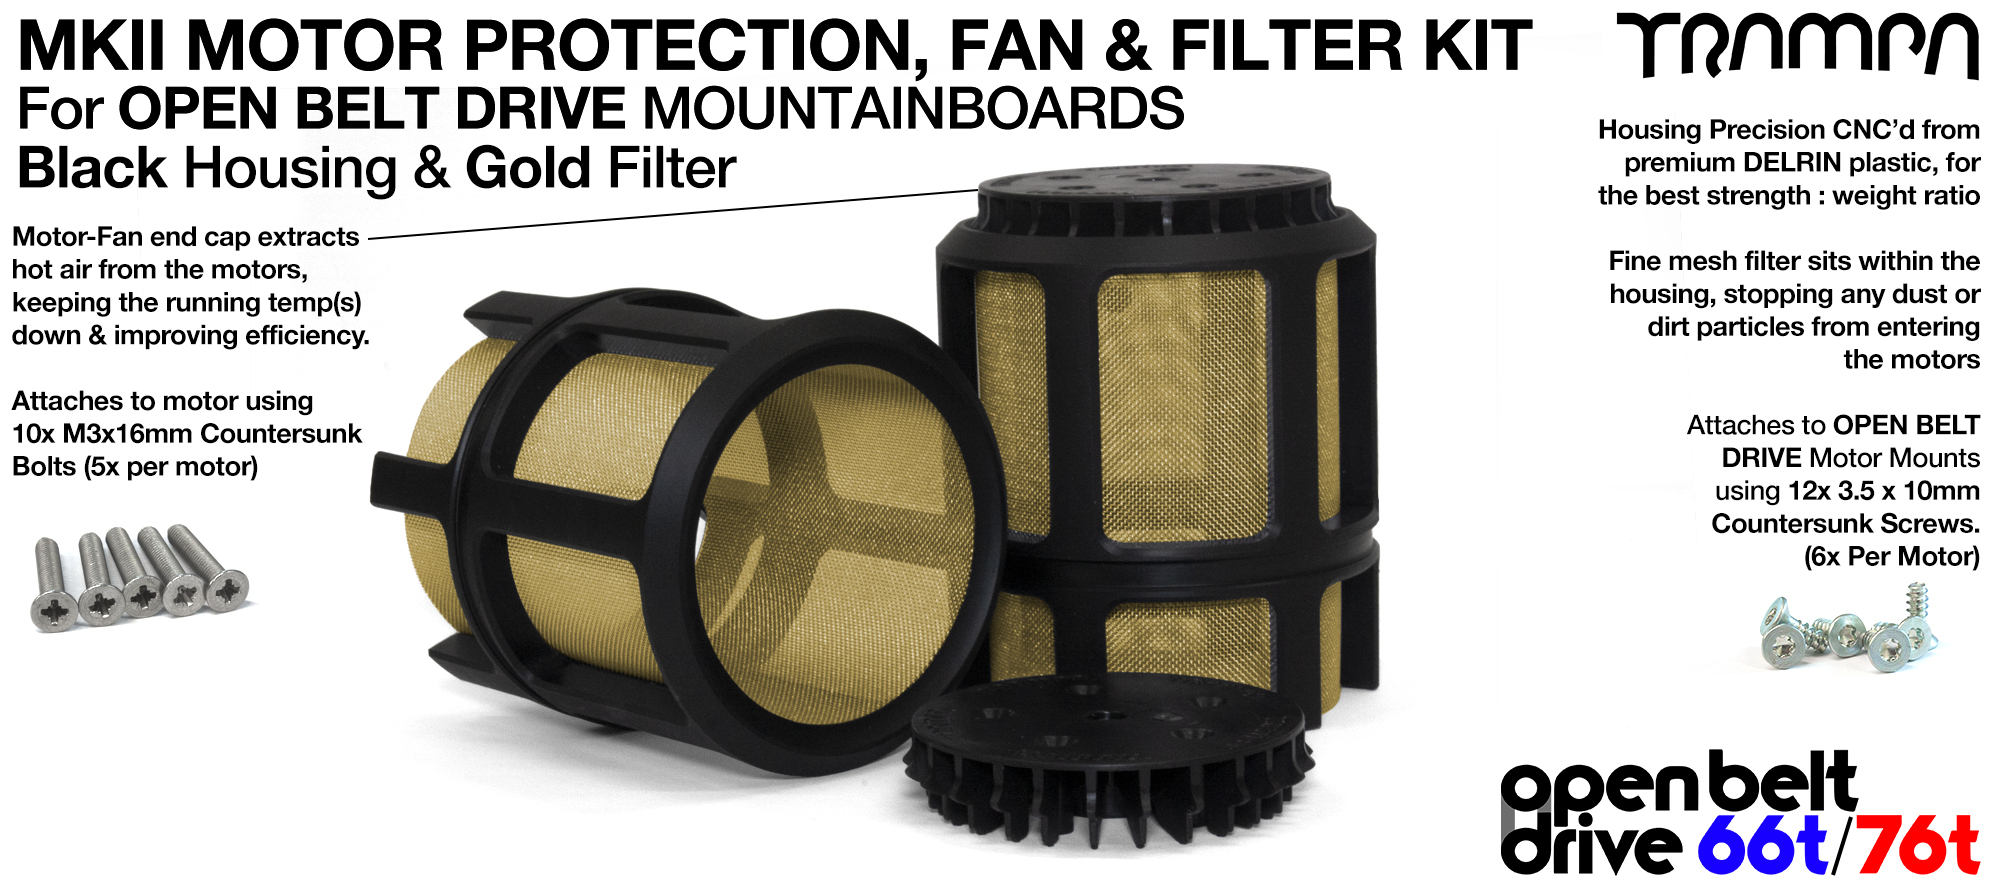 2x OBD Motor protection Sleeve BLACK with GOLD Filter